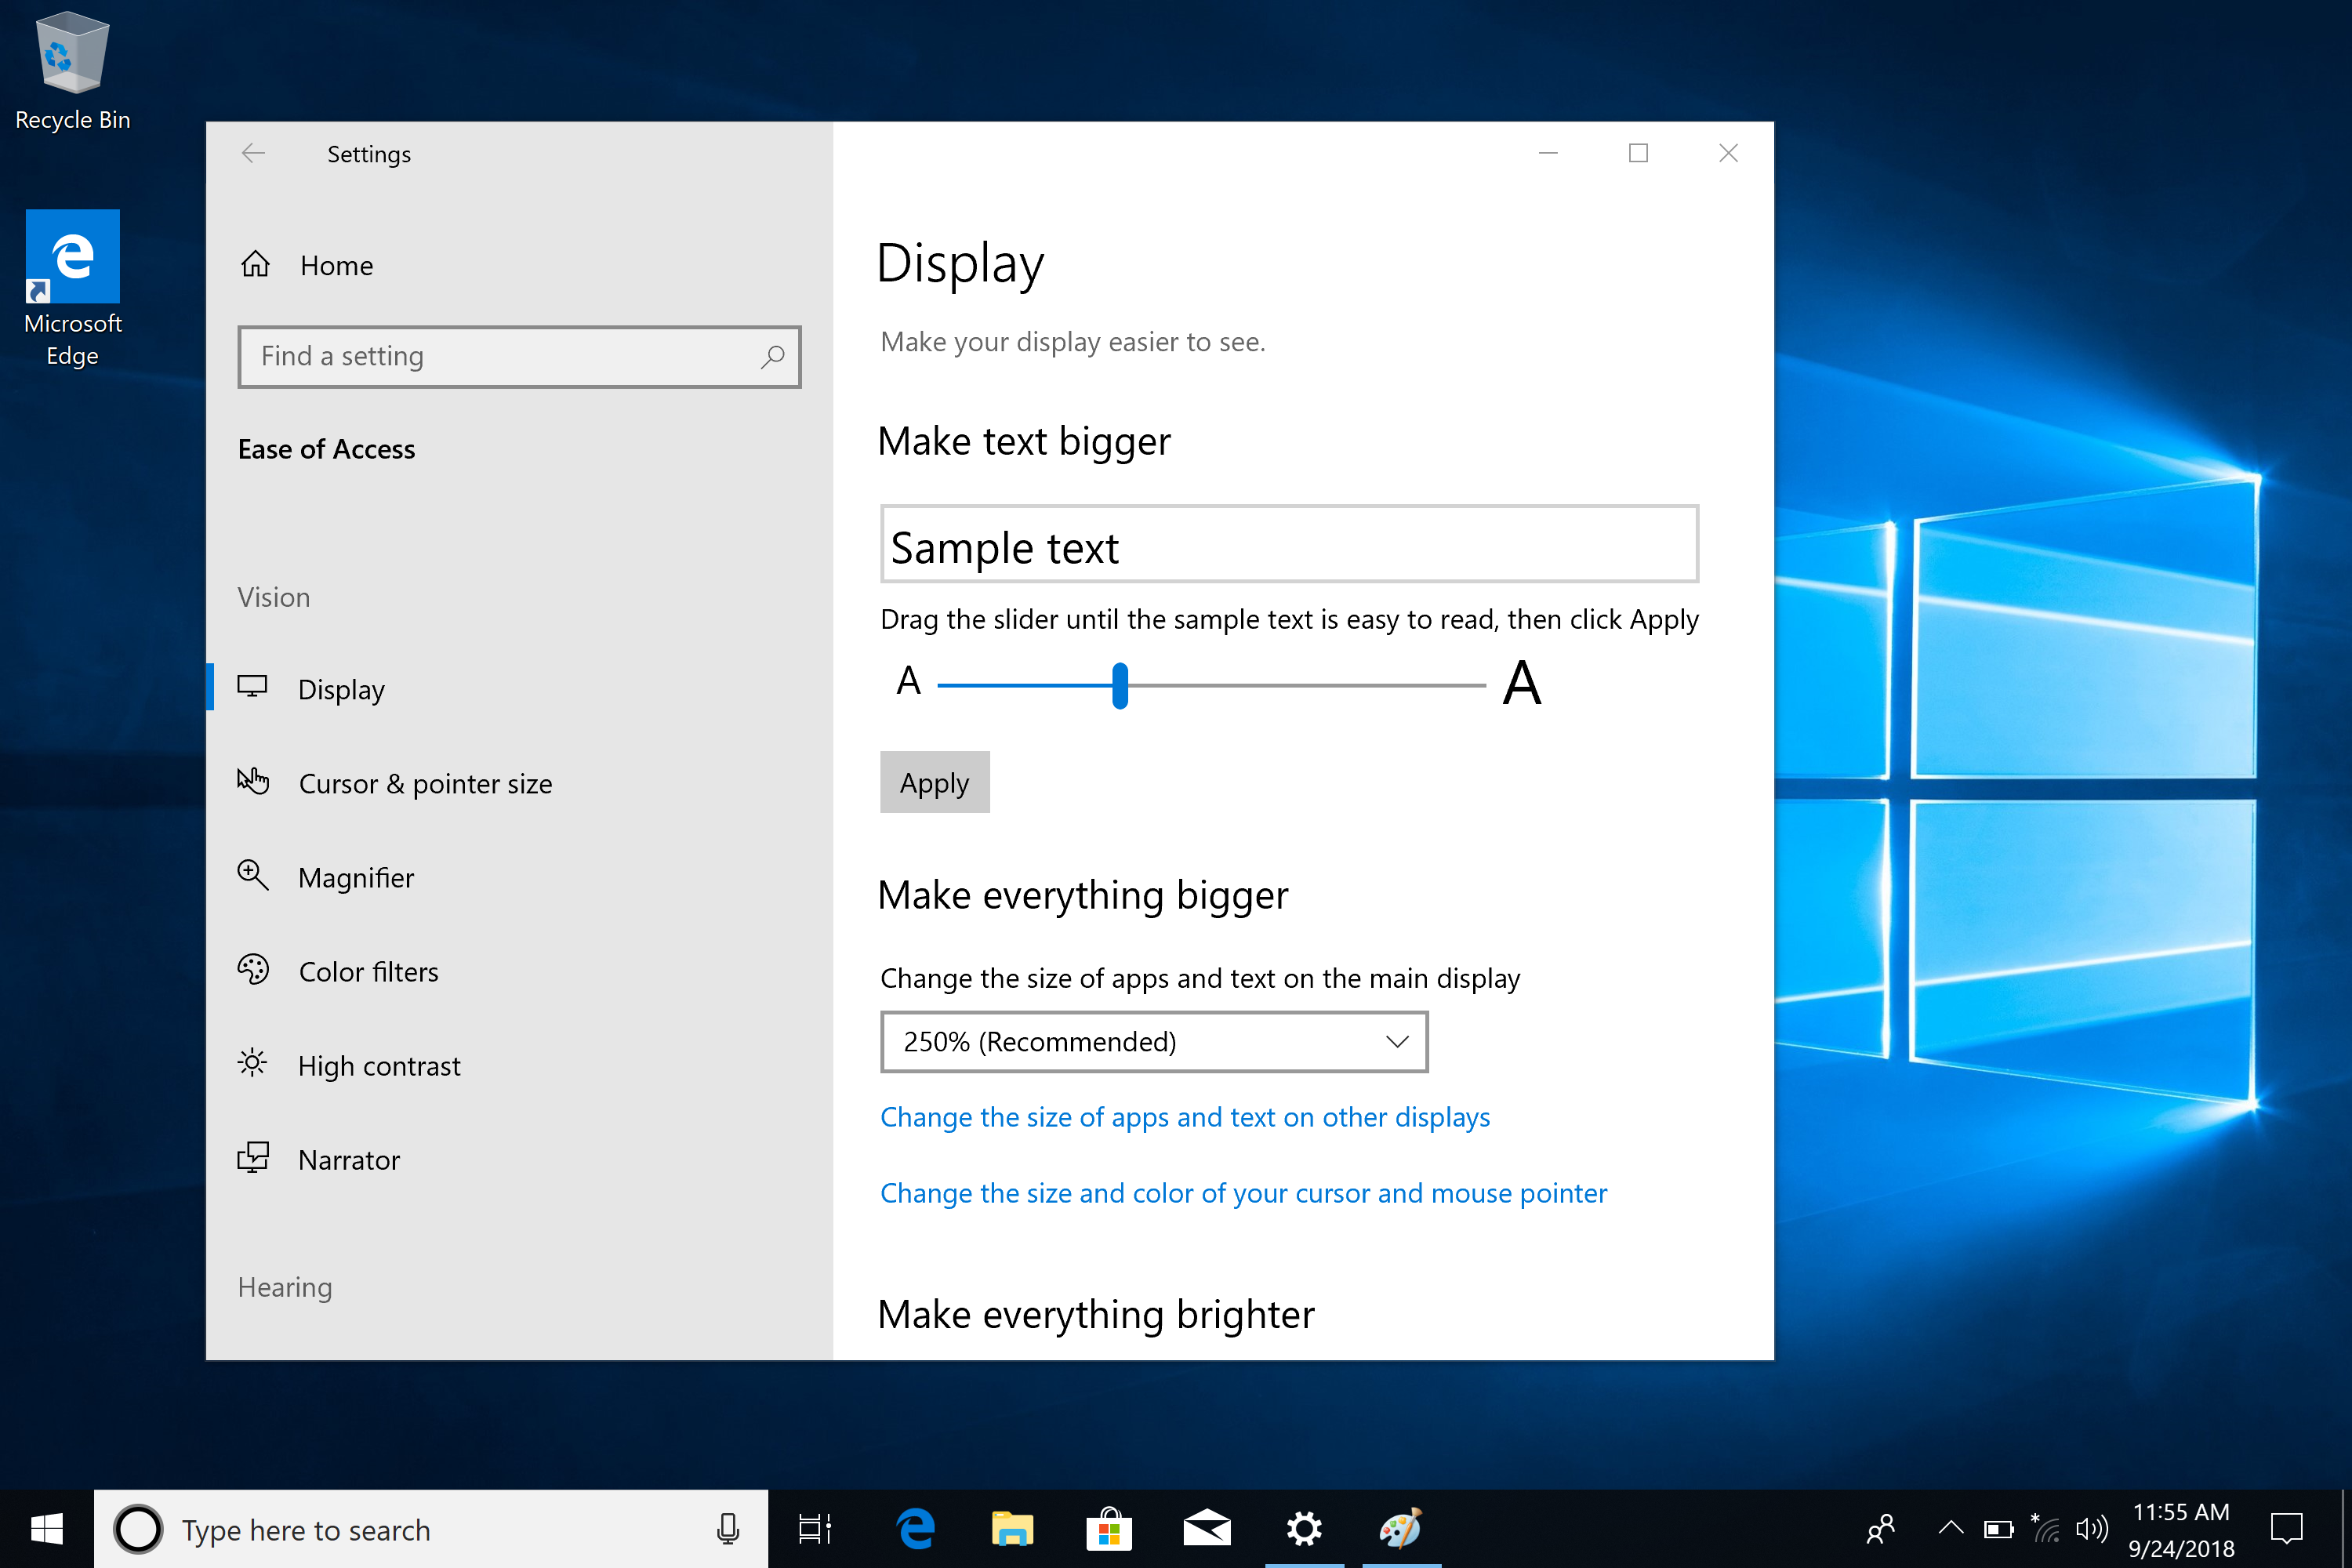 What's new in the Windows 10 Insider Preview Builds (RS5